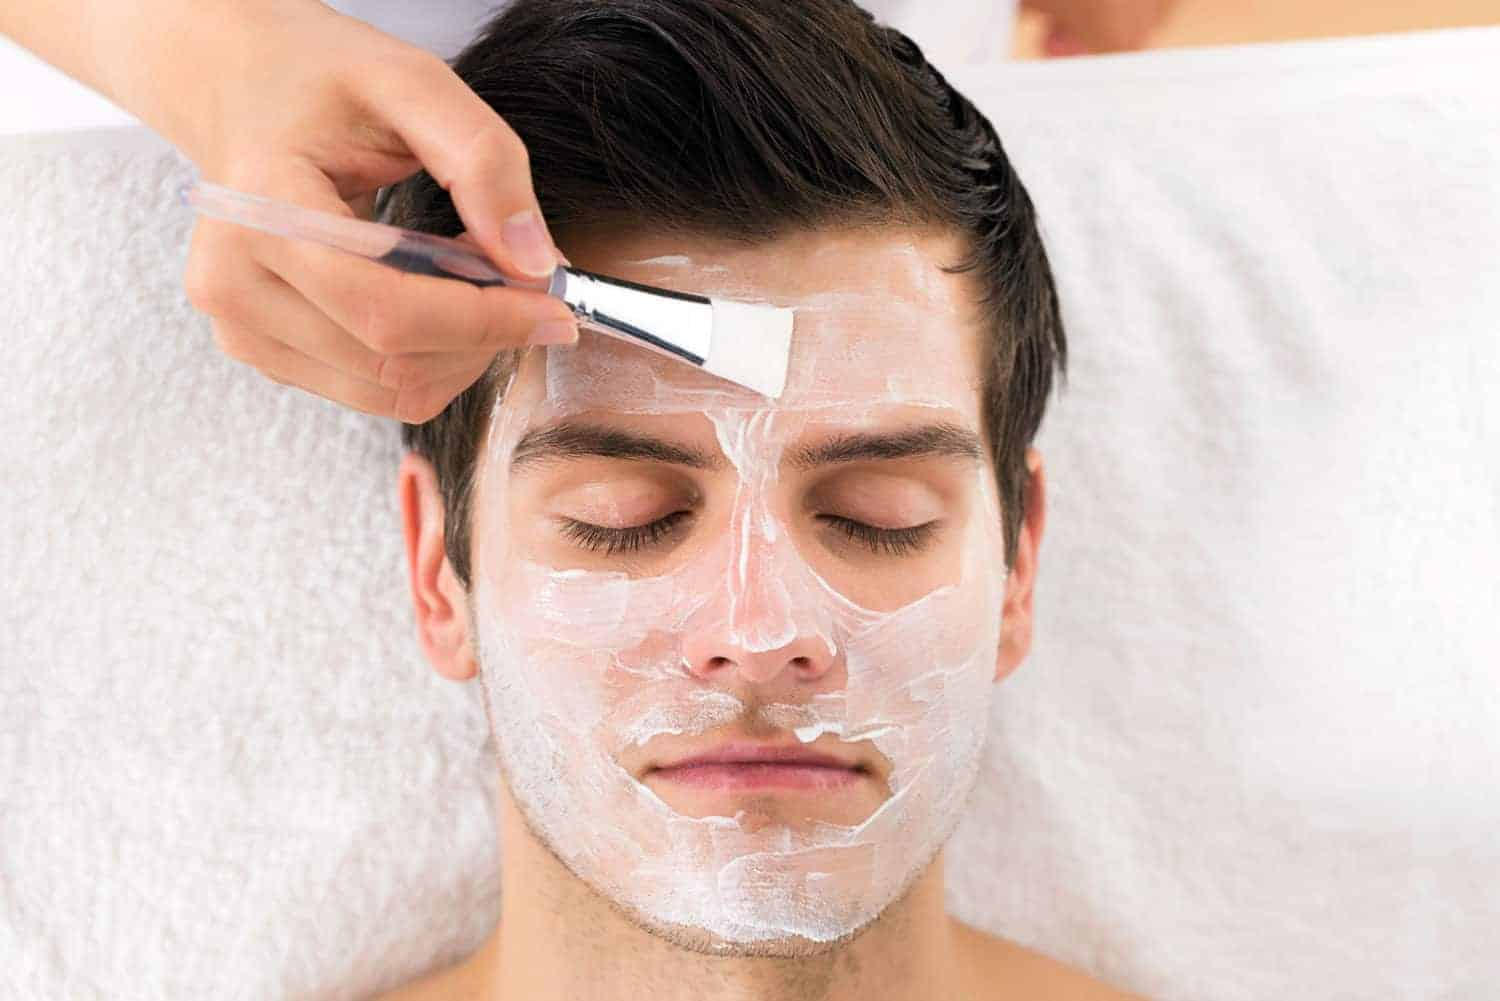 A man receiving facial treatment